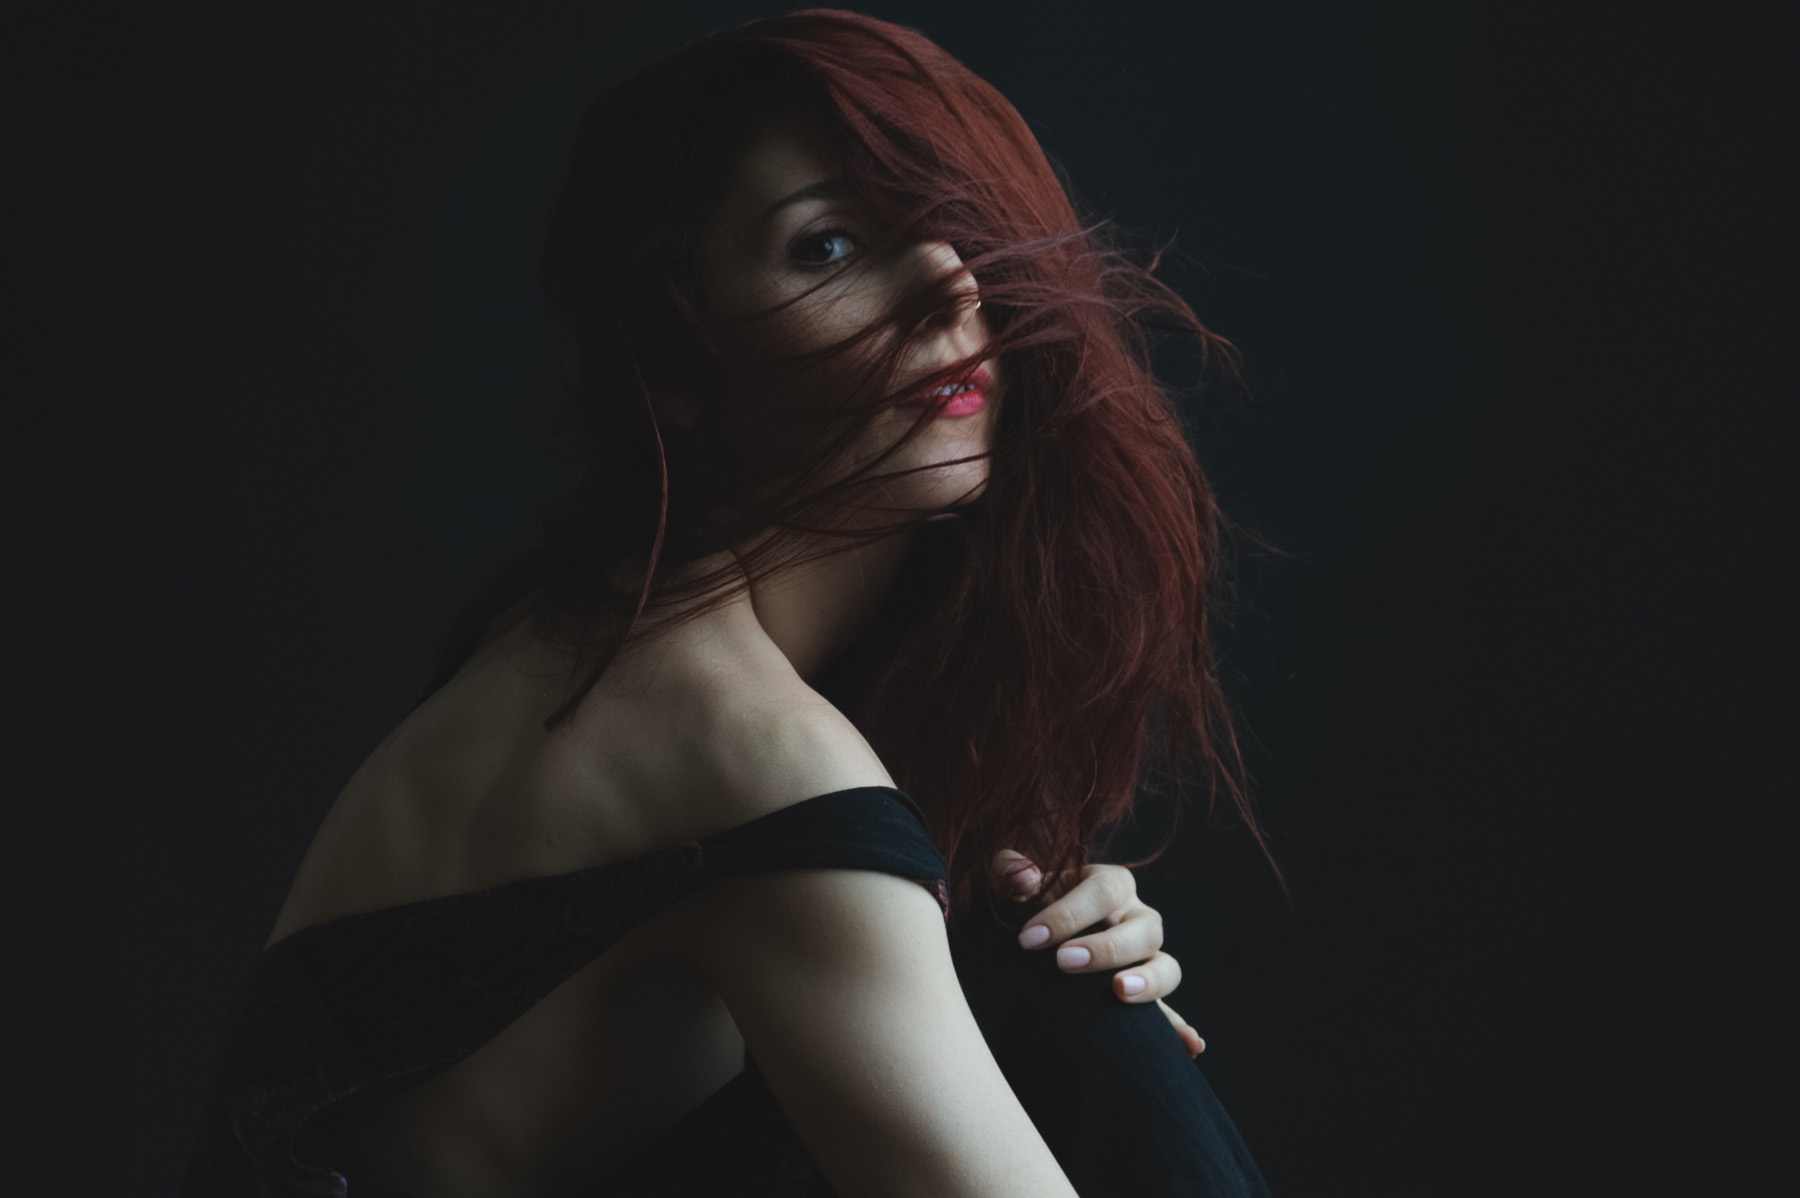 a portrait of Jana sitting in front of a black background with her dark red hair flowing in front of her face looking slightly towards the camera, her skin is light and you can clearly see the definition of her muscles.